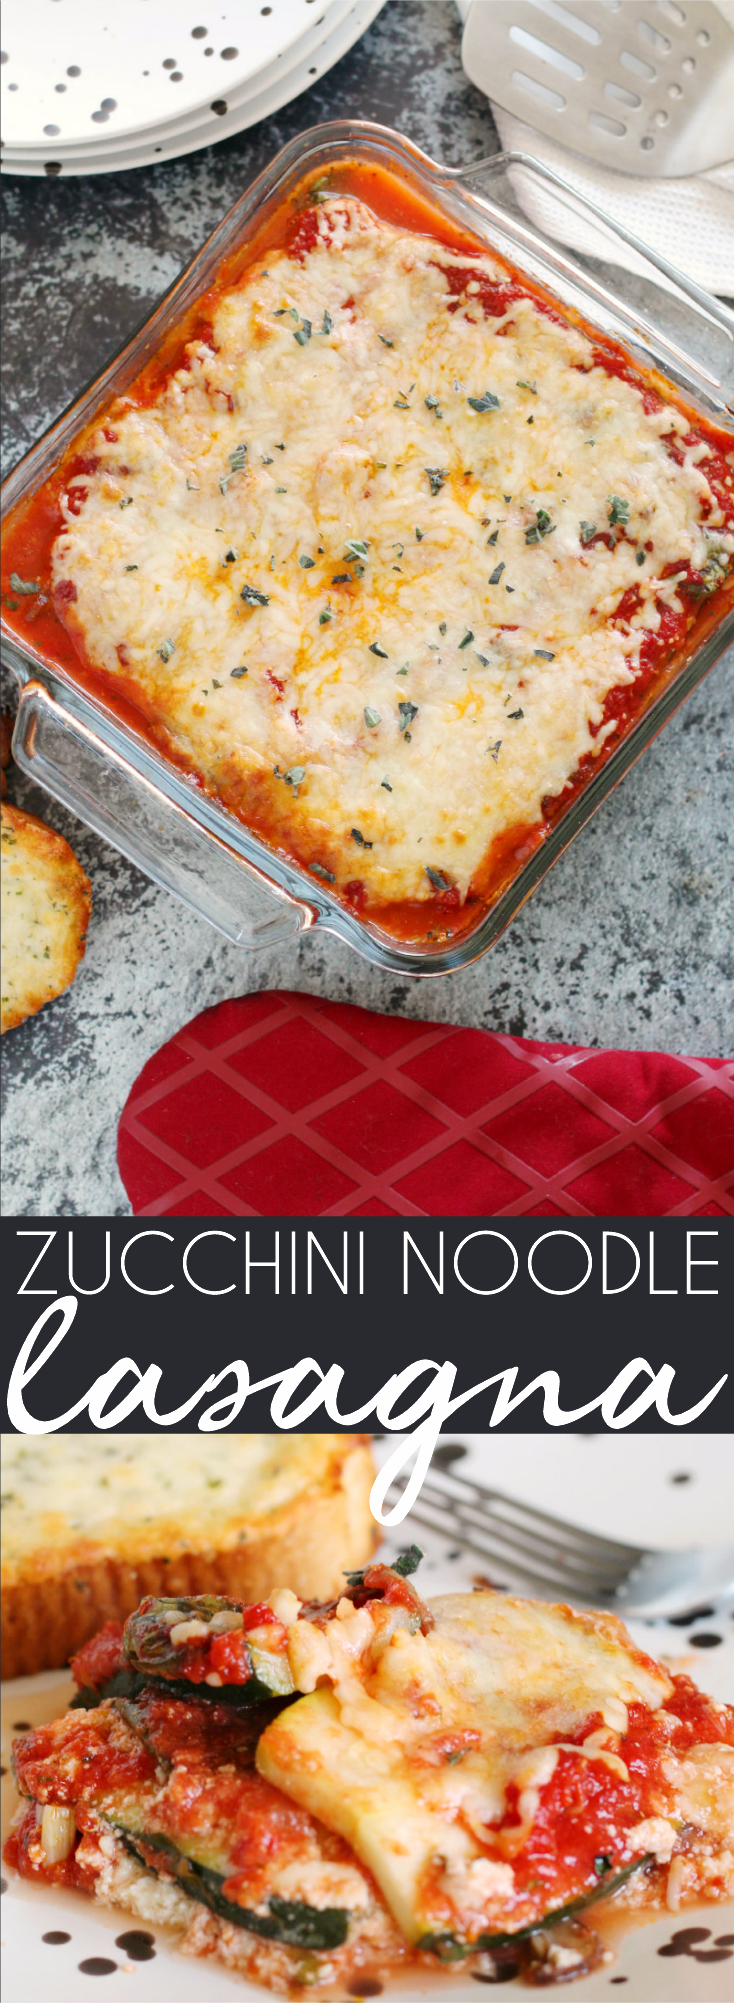 This Low-Carb Zucchini Lasagna is healthy comfort food at its finest. This Keto Diet approved dish uses zoodles to create a vegetarian lasagna that's a healthier classic to a high-carb pasta favorite.